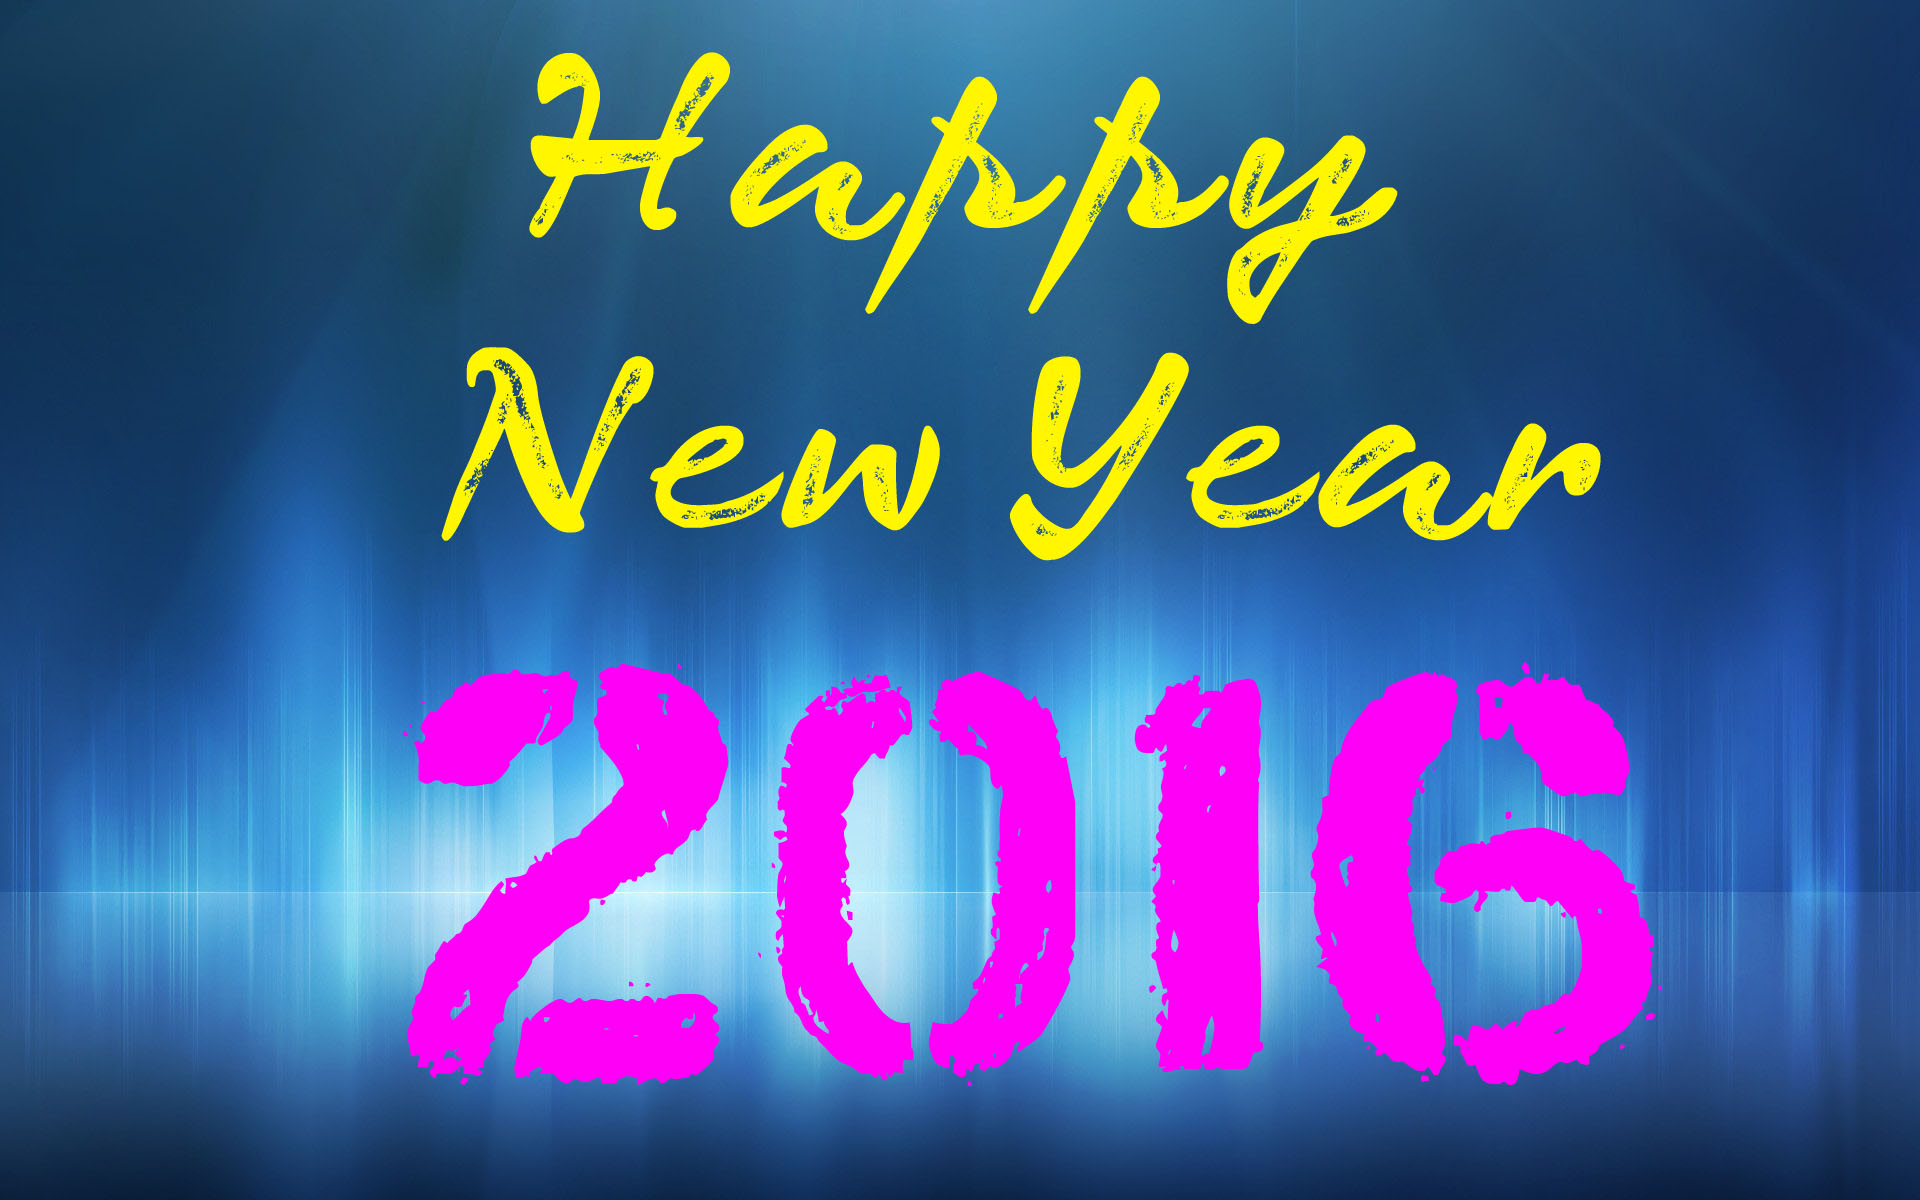 happy new year 2016 wishes wallpaper